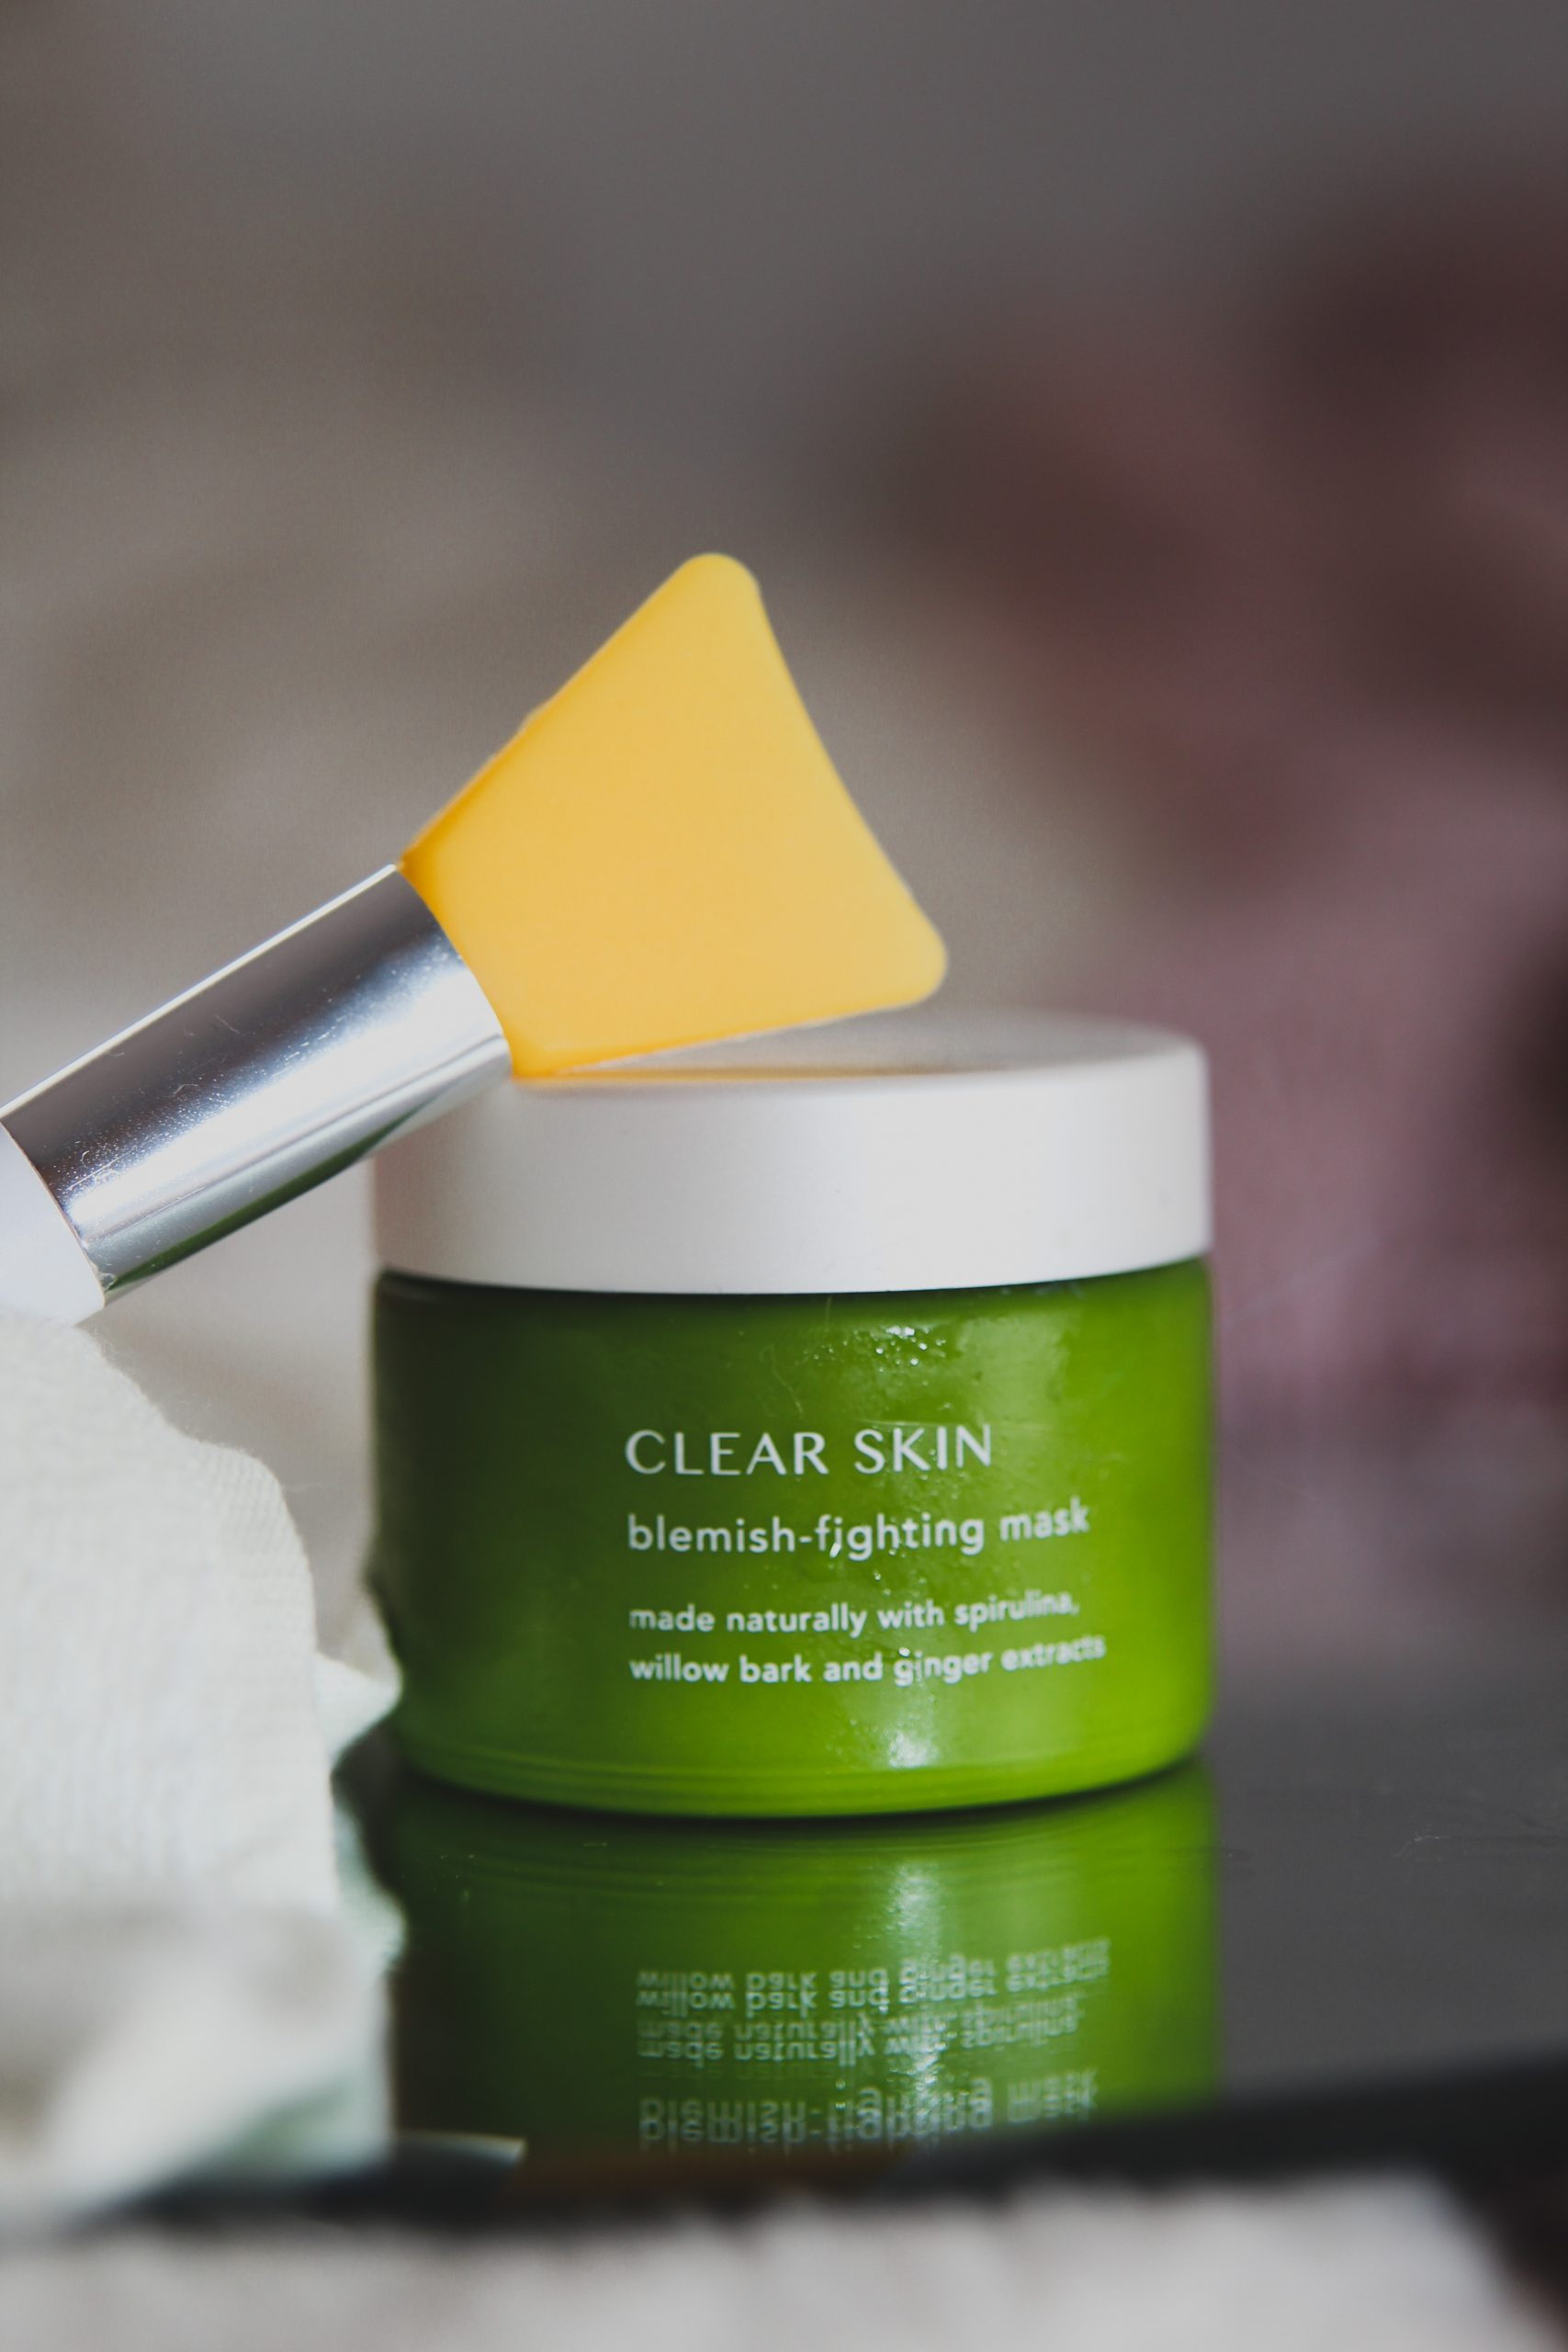 Clear skin blemish fighting mask